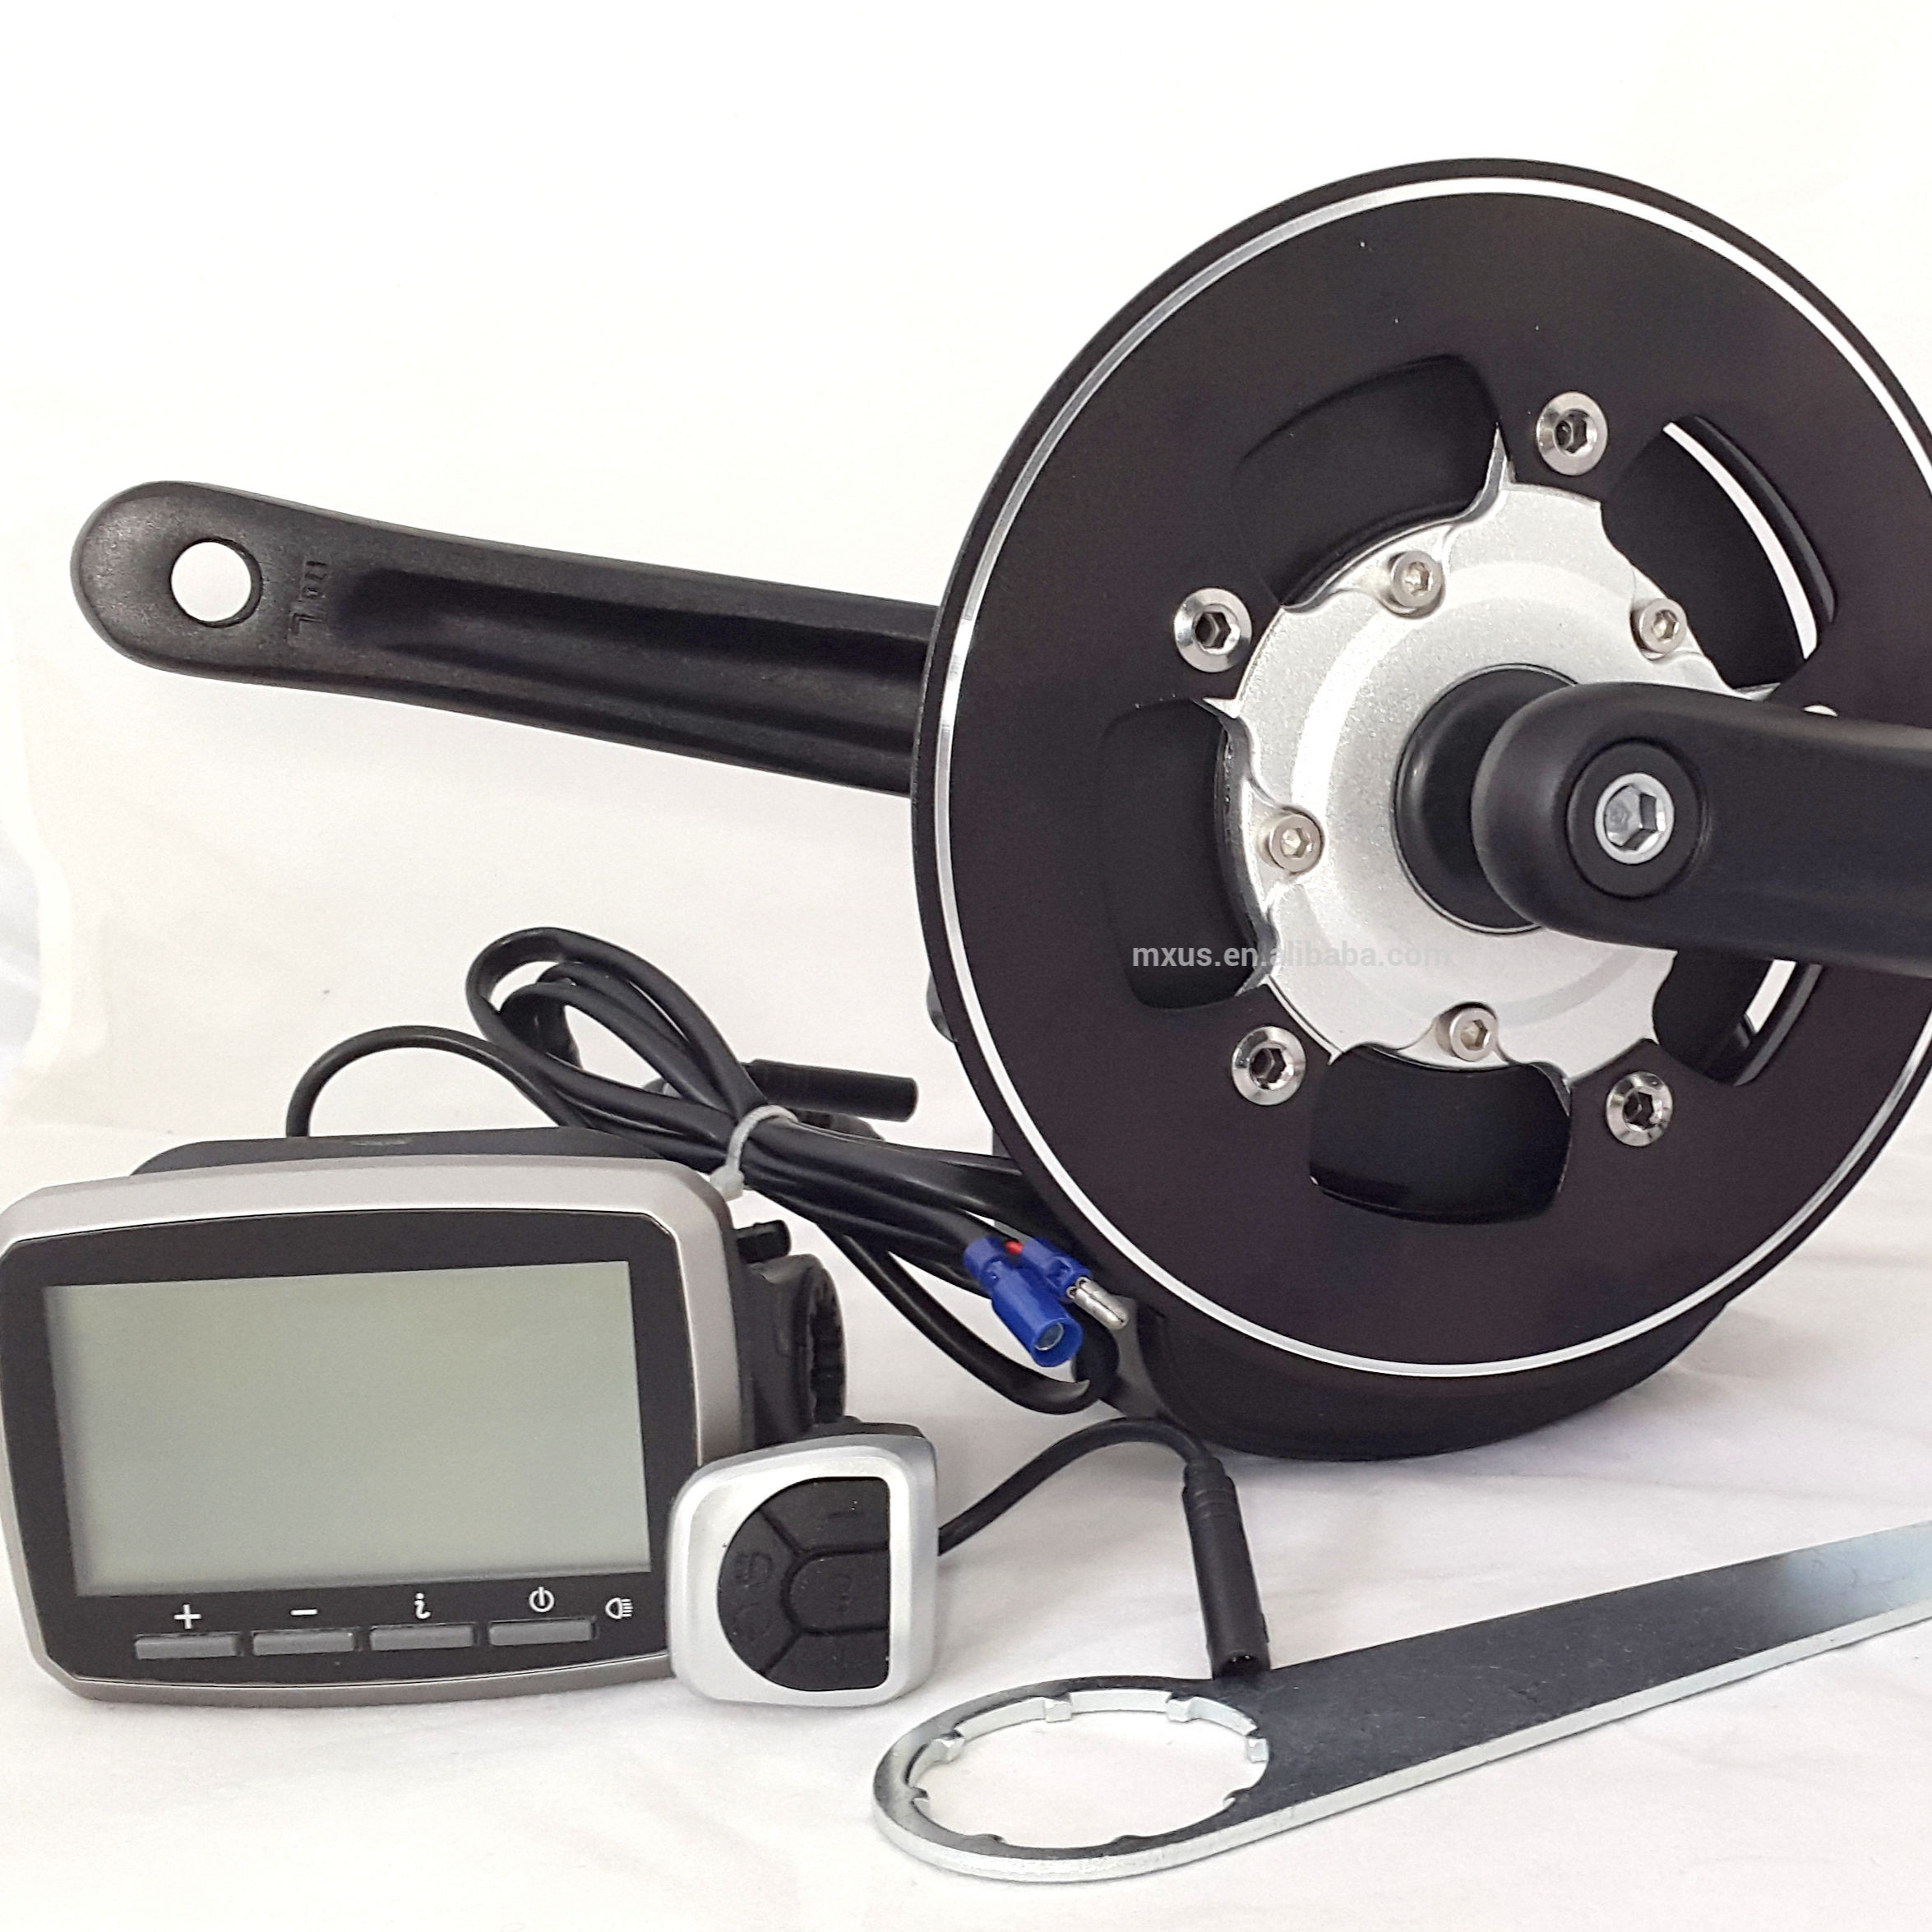 Hot selling TSDZ2 48V500W Mid Drive Motor Ebike kit with VLCD5